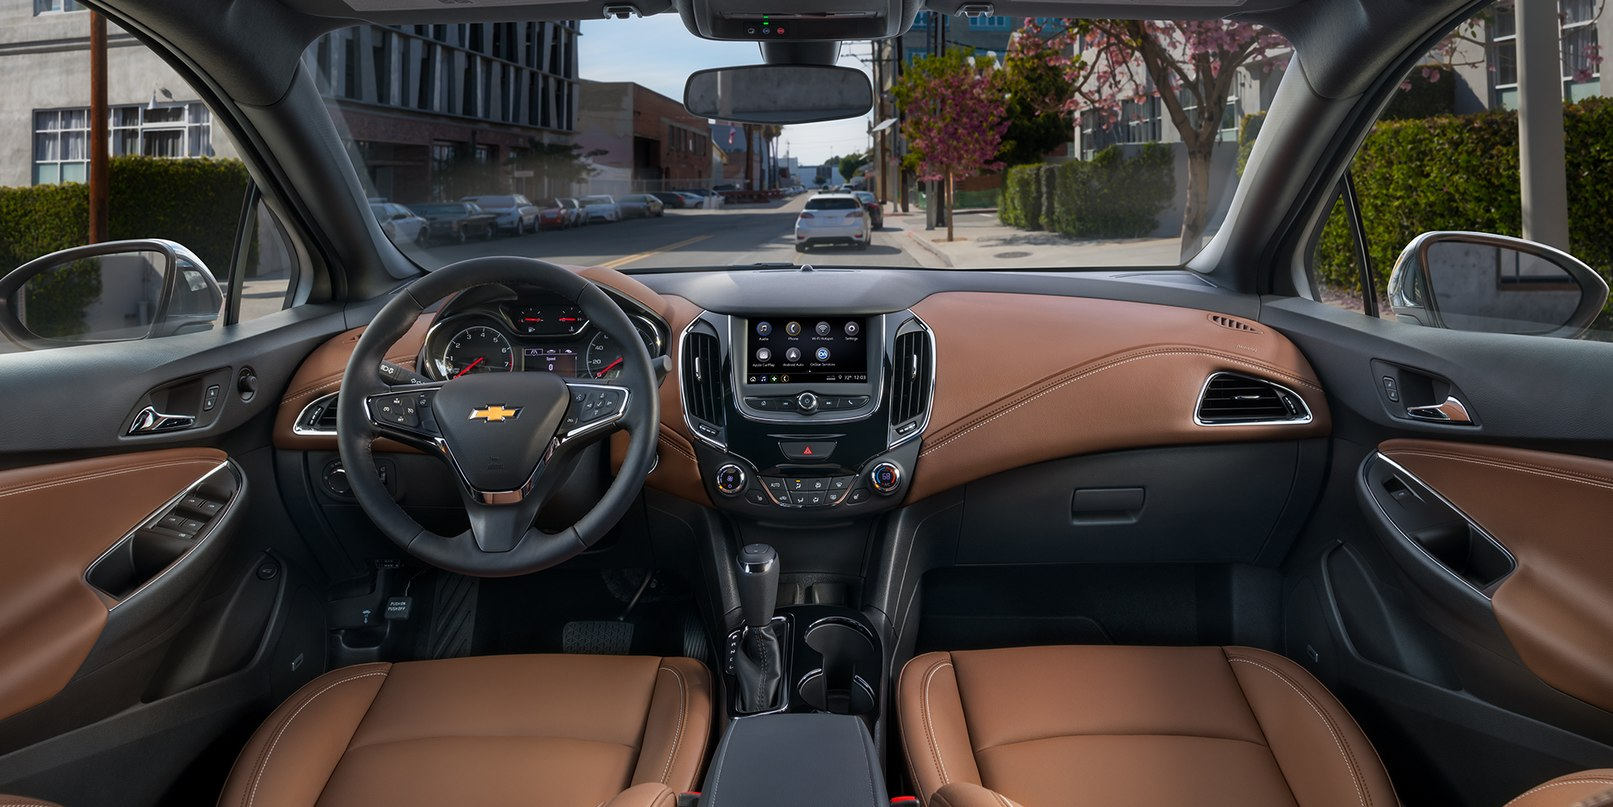 Interior of the 2019 Cruze